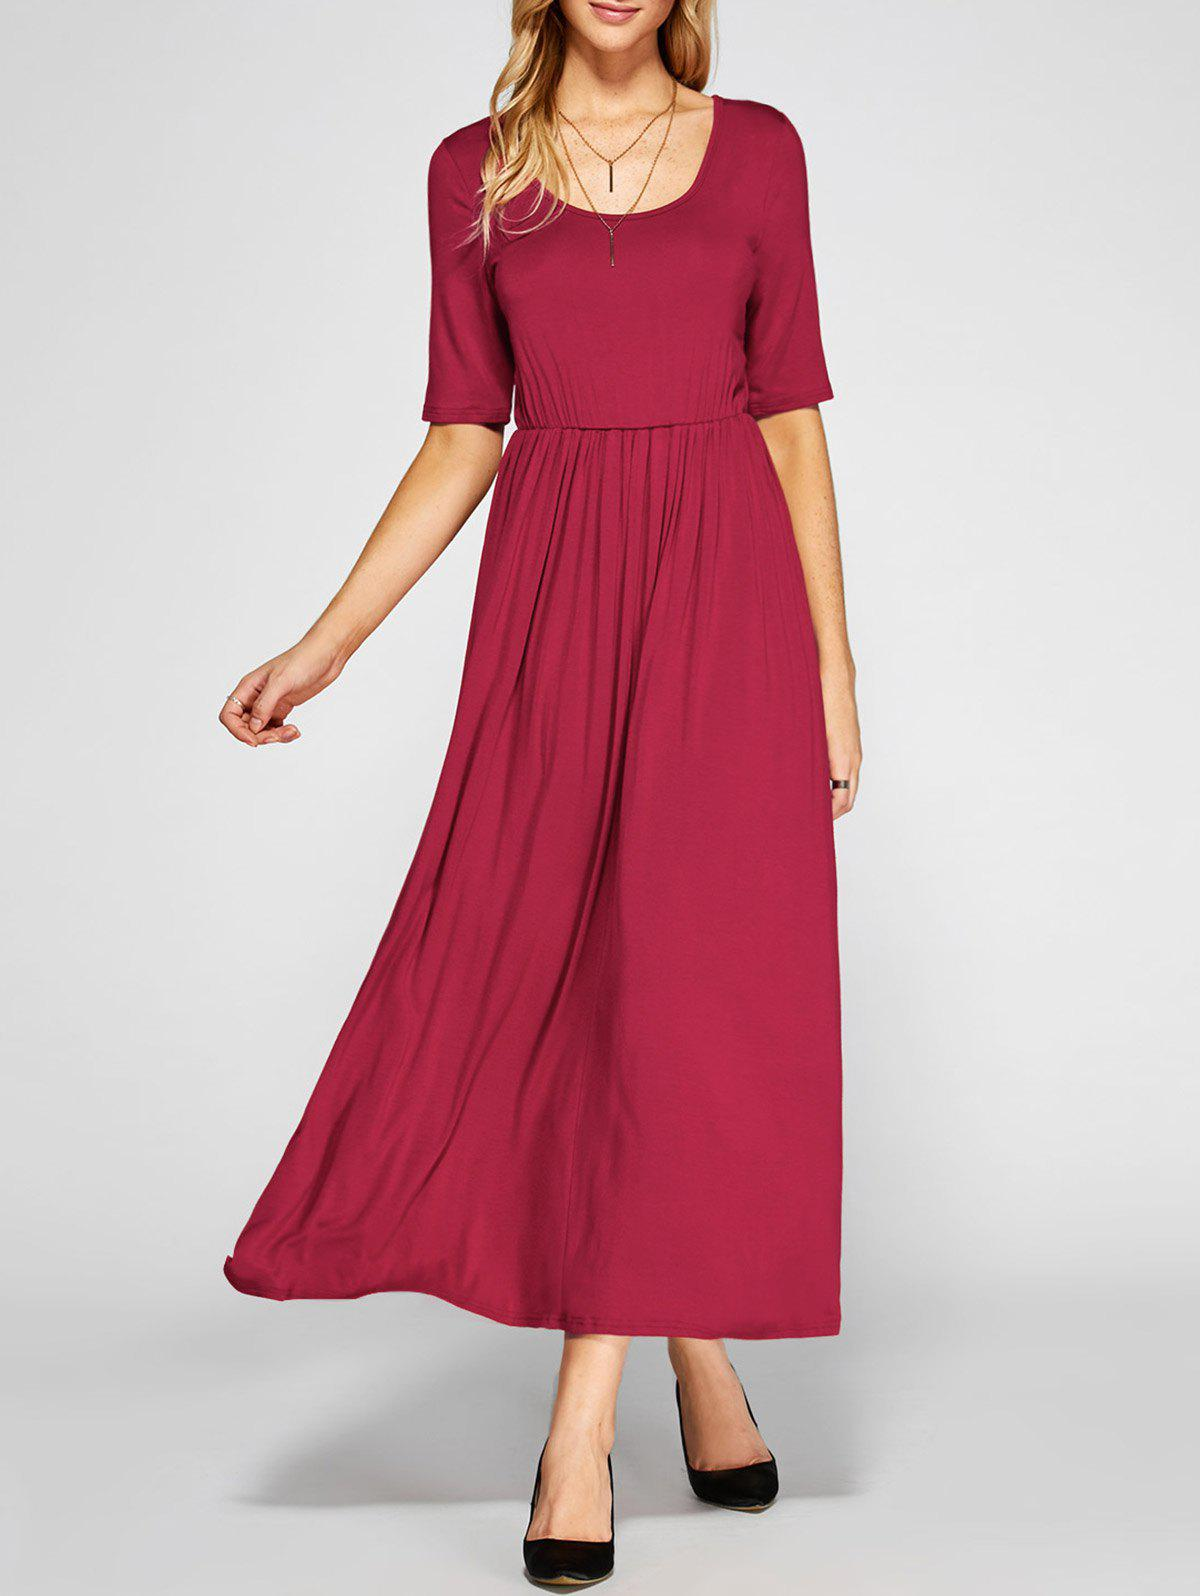 Red Xl Maxi High Waist Pleated A Line Dress | RoseGal.com